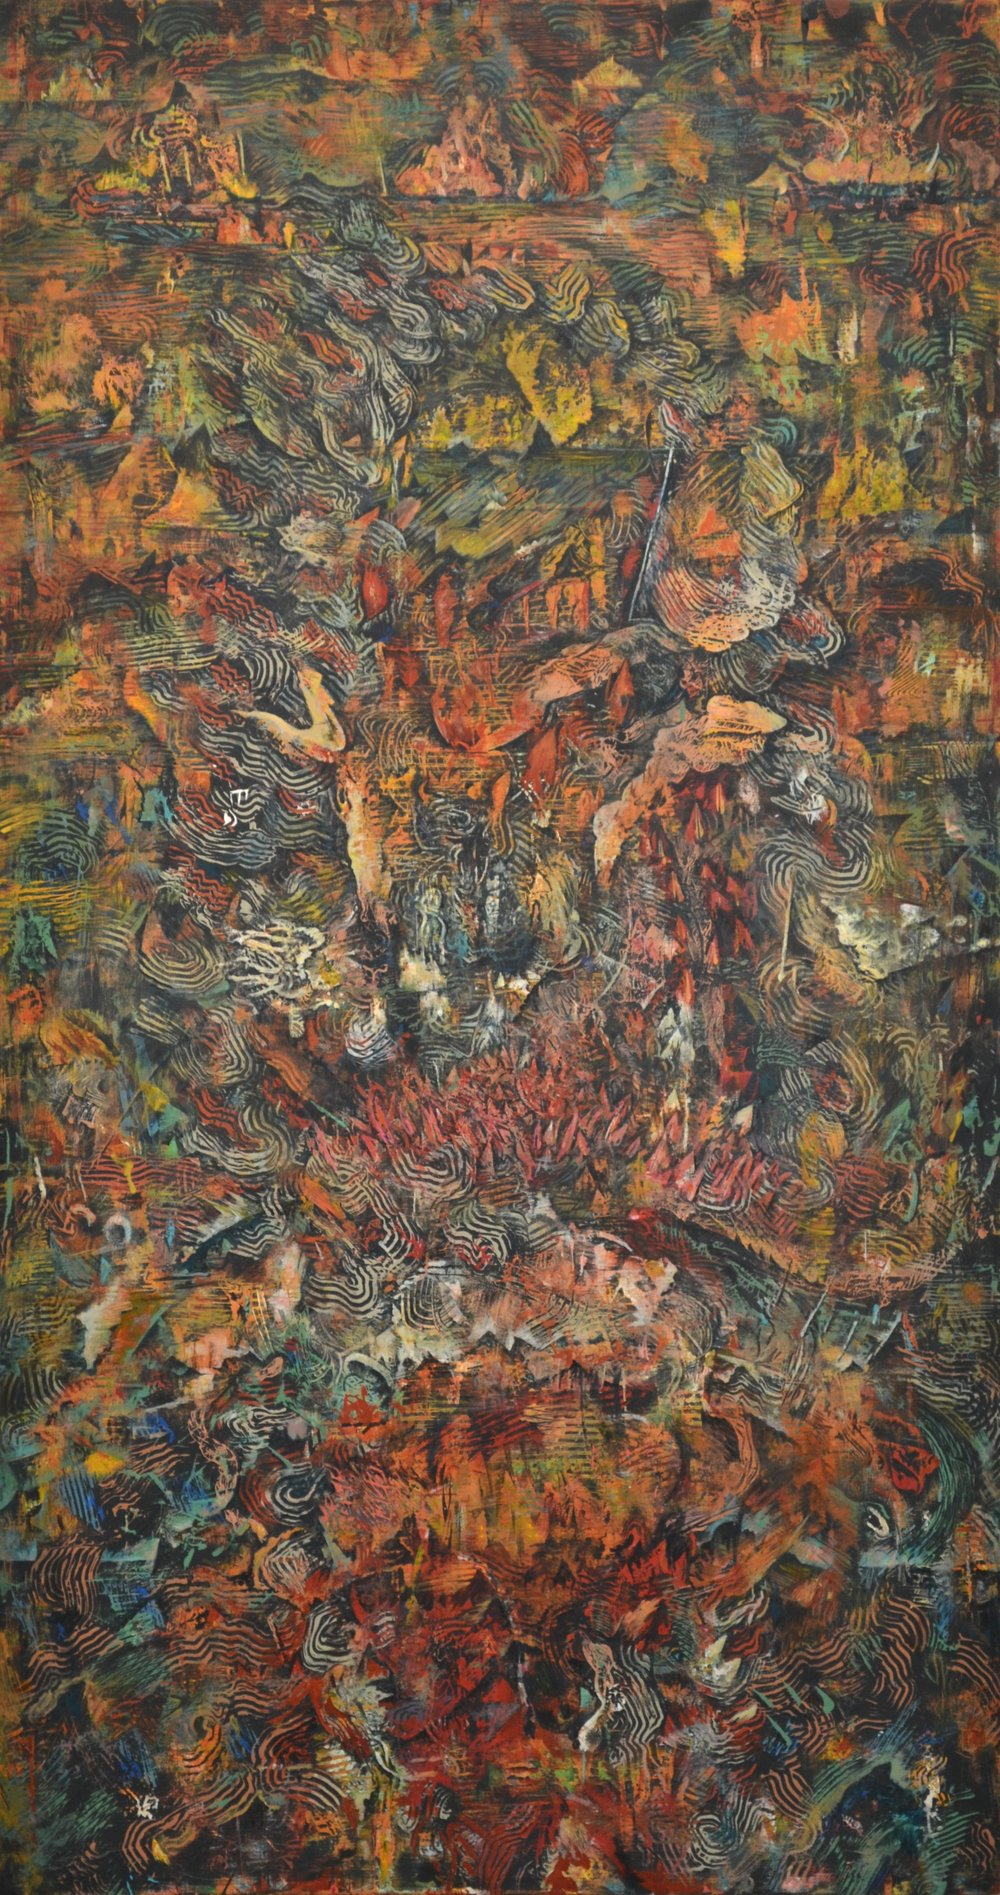 Untitled (Fire, Poudre Canyon, June 2012)   30.5 x 16.5 inches Acrylic on plywood 2017